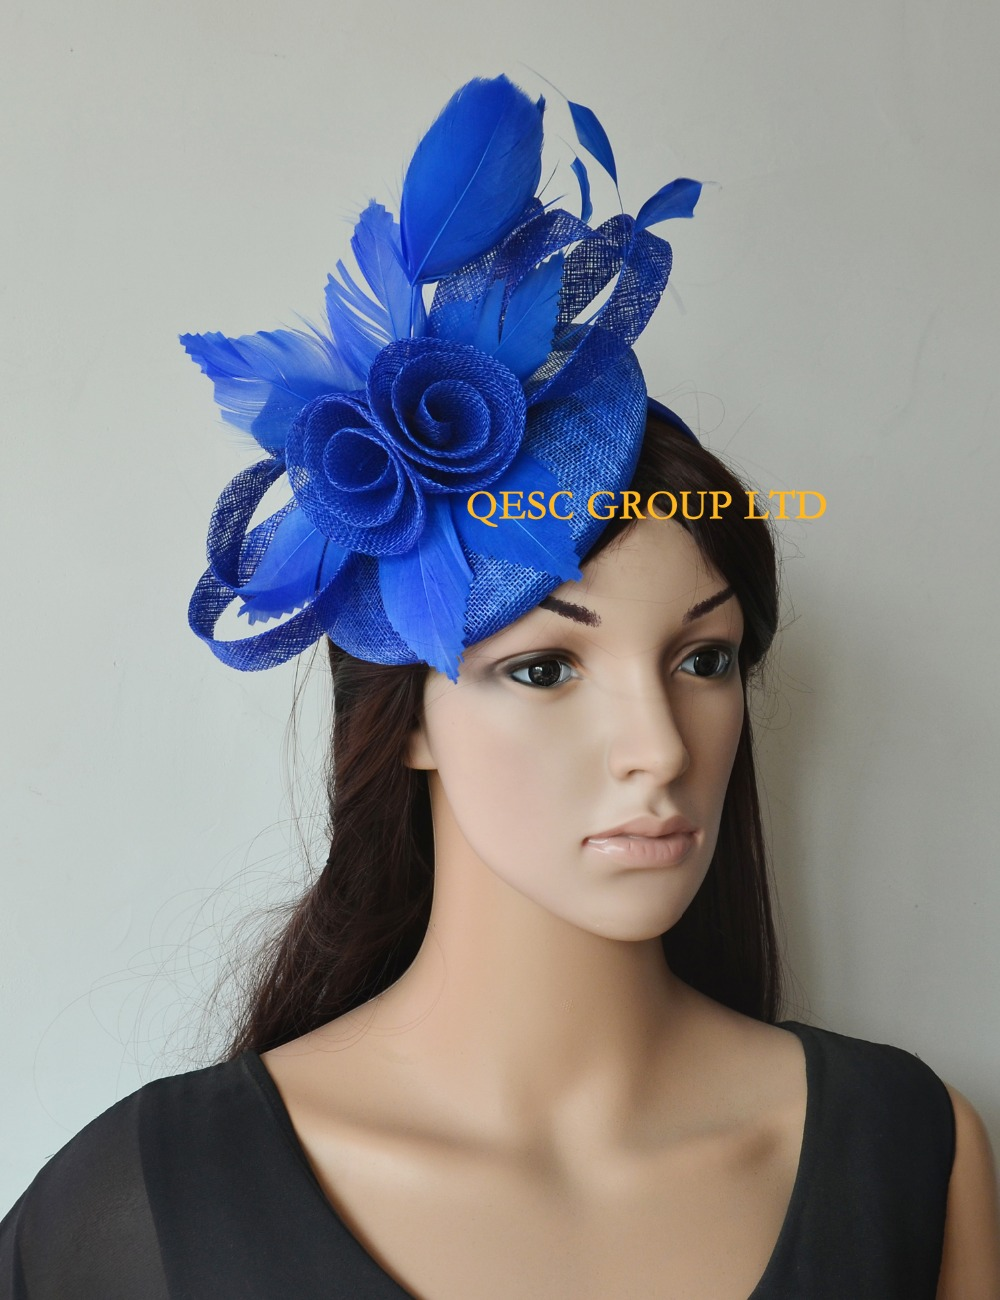 2b30563c Wholesale NEW 8 colours Black Kentucky derby Hat Feather Fascinator sinamay fascinator  hat for Melbourne Cup,Races,Wedding.-in Women's Hair Accessories from ...